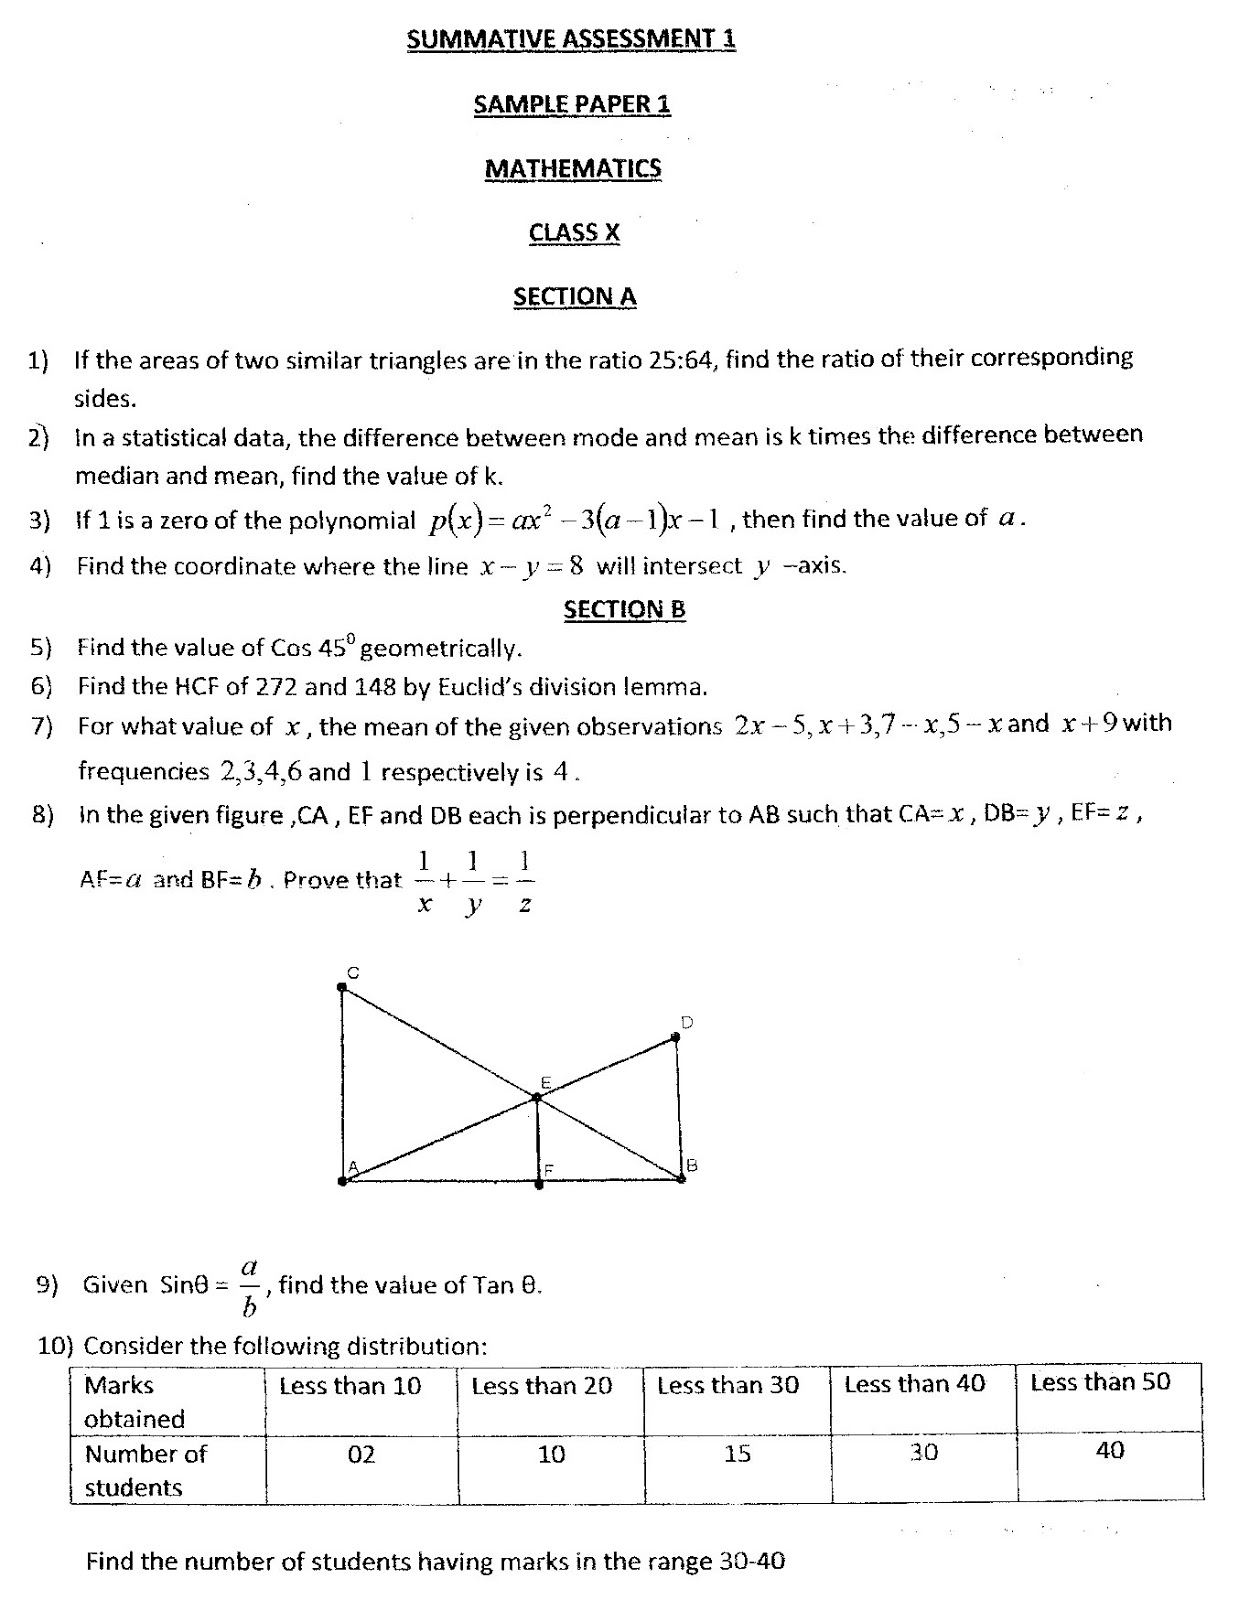 Maths4all class x delhi public school rkpuram sample paper 1 sa1 class x delhi public school rkpuram sample paper 1 sa1 2014 question paper malvernweather Choice Image